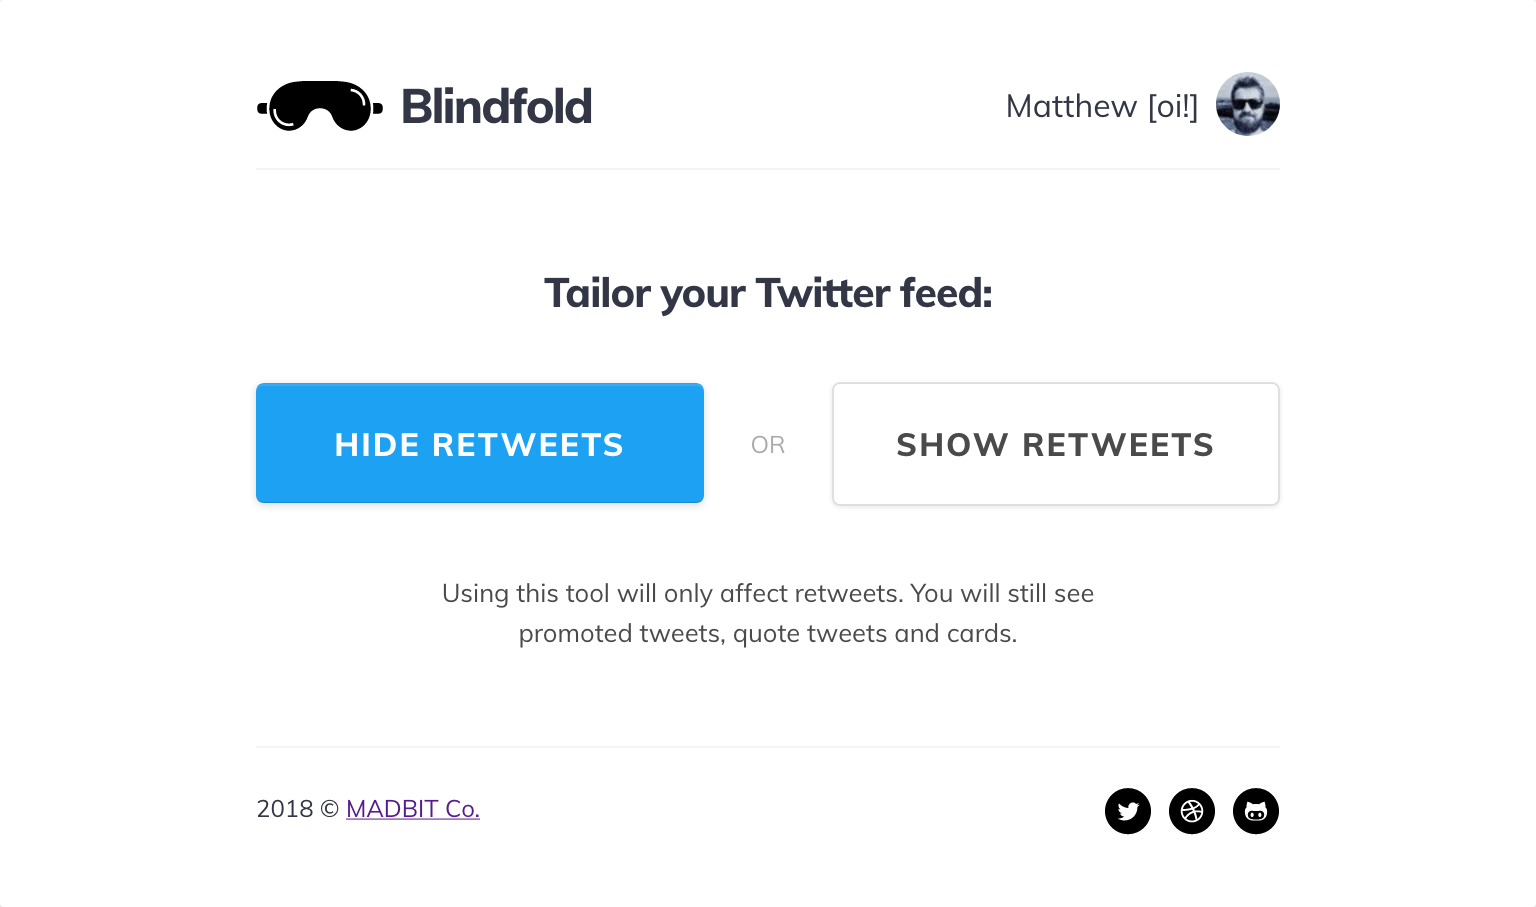 Default Blindfold screen after signing in with a Twitter account.